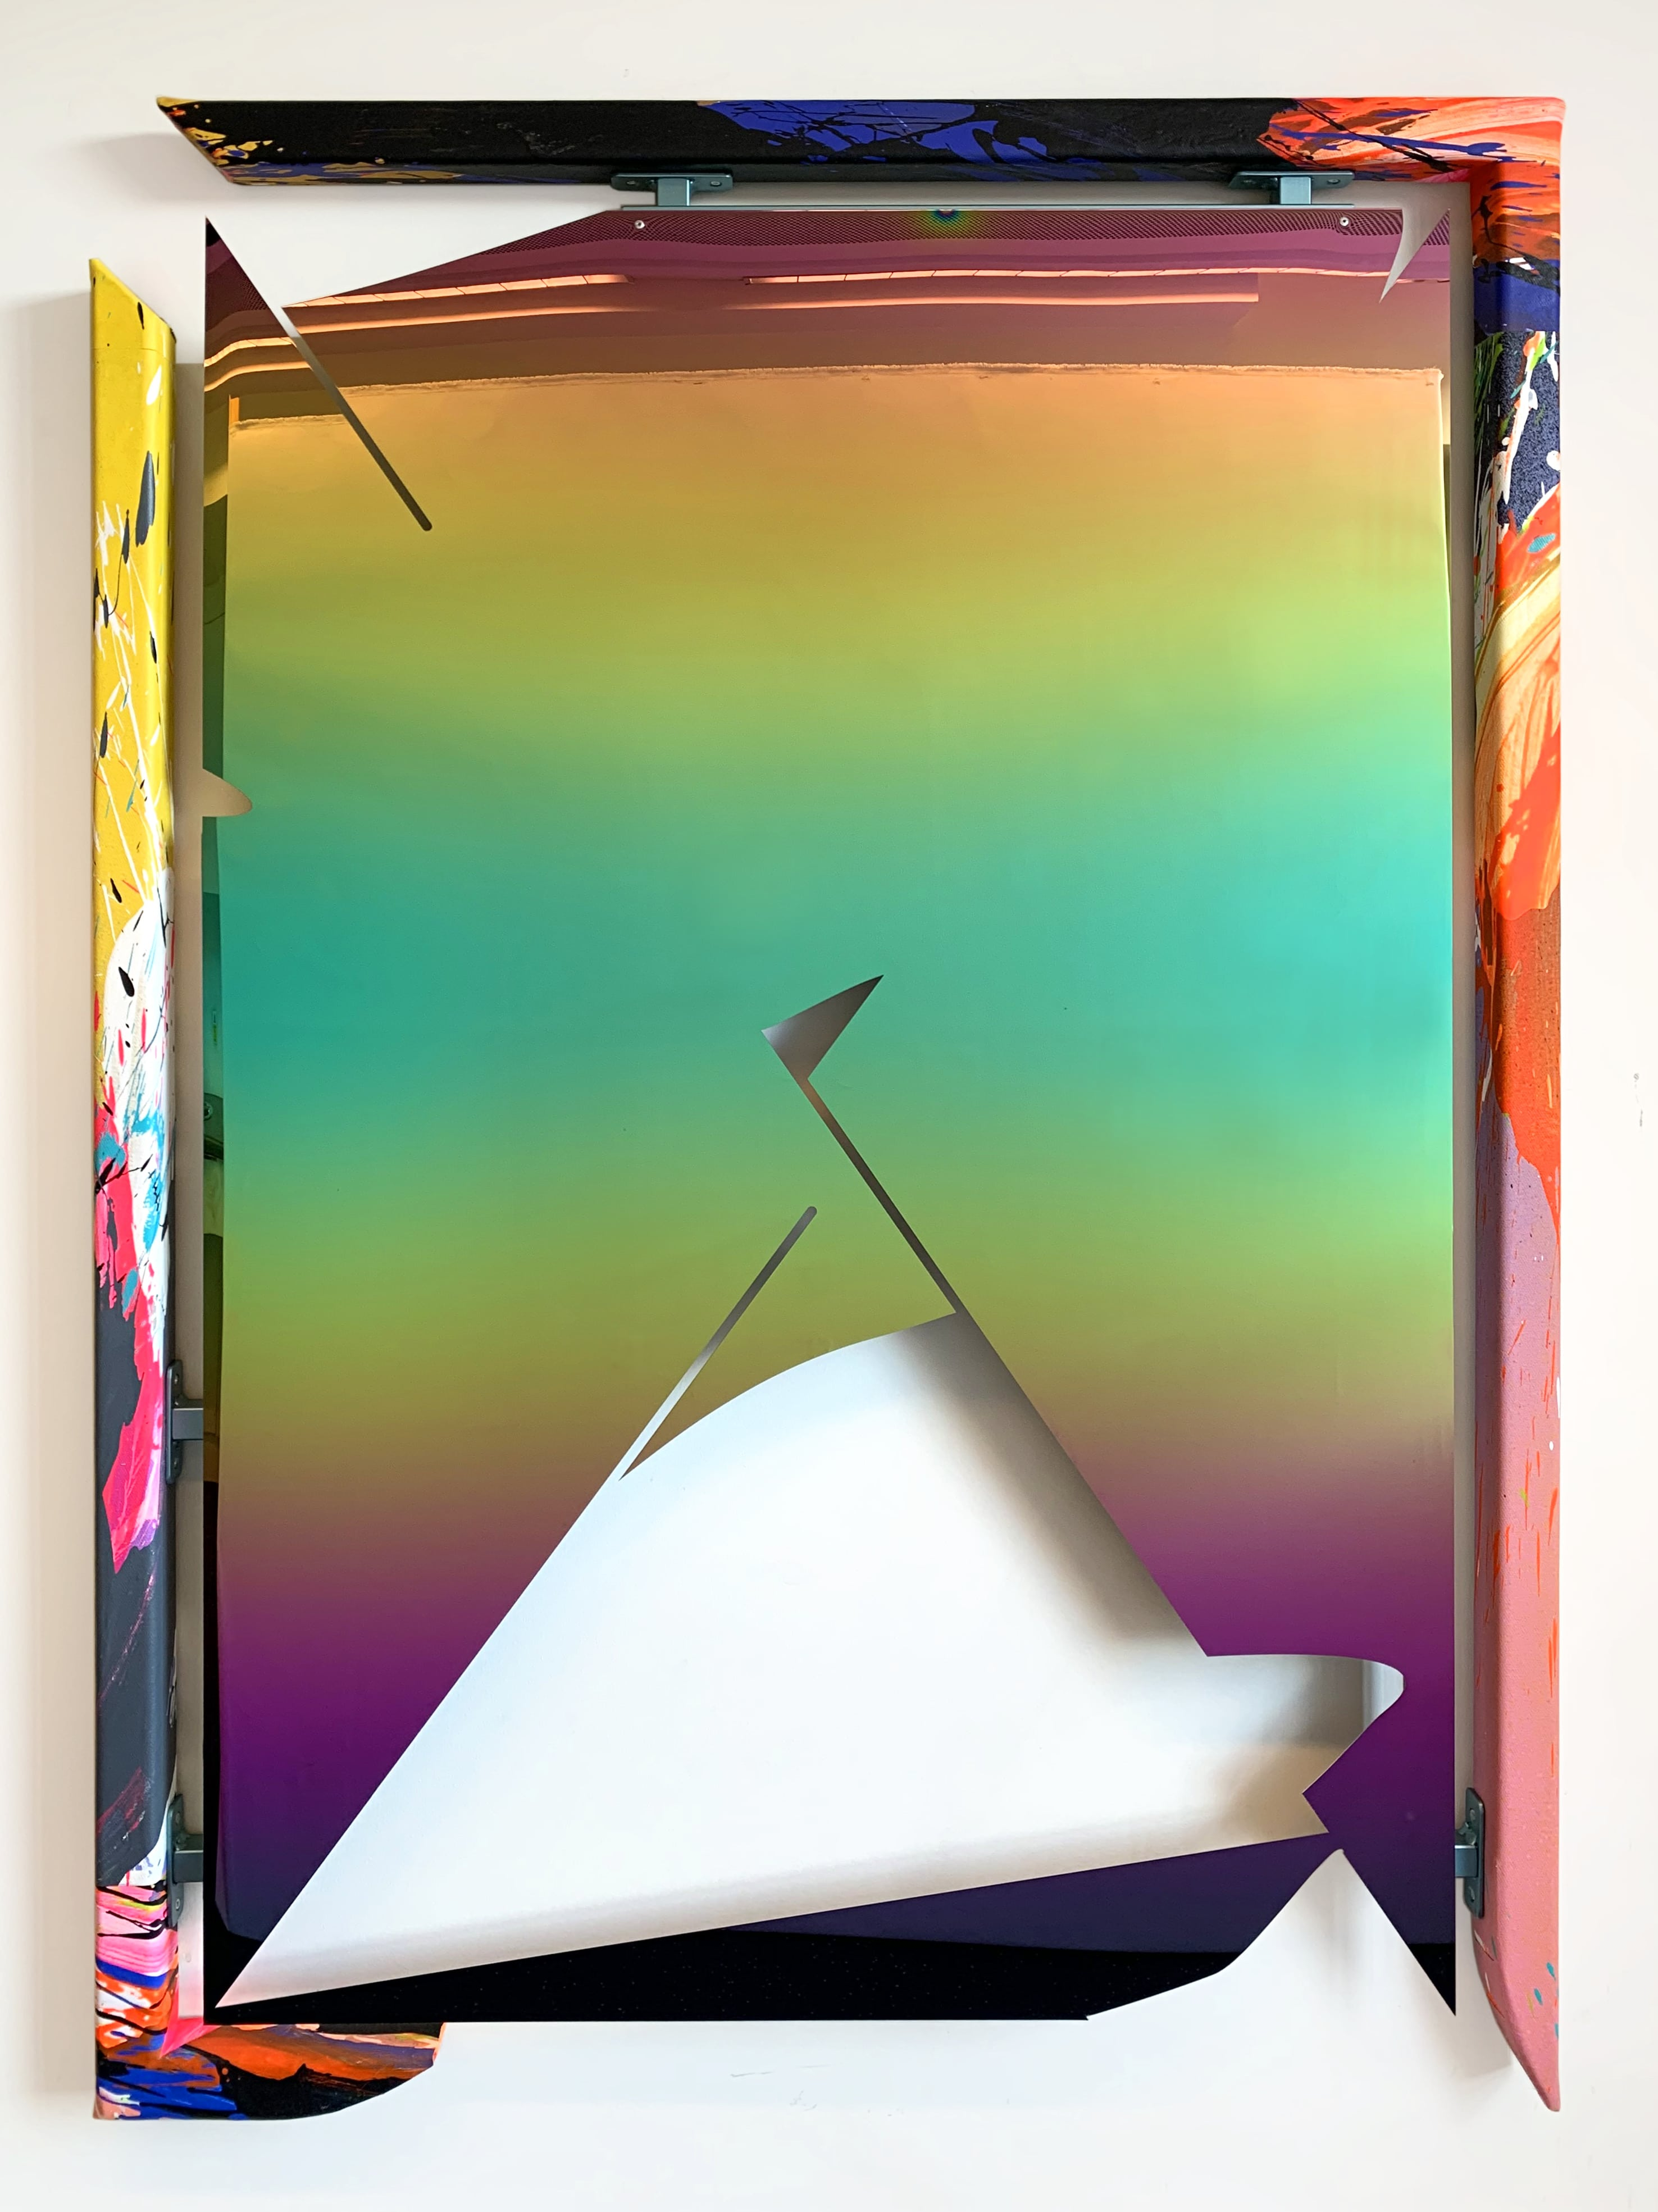 NemesM_The-Void-Paintings-03_2020_136x96cm_PVD-coated-stainless-steel-carpaint-steel-acrylic-canvas-wood-min